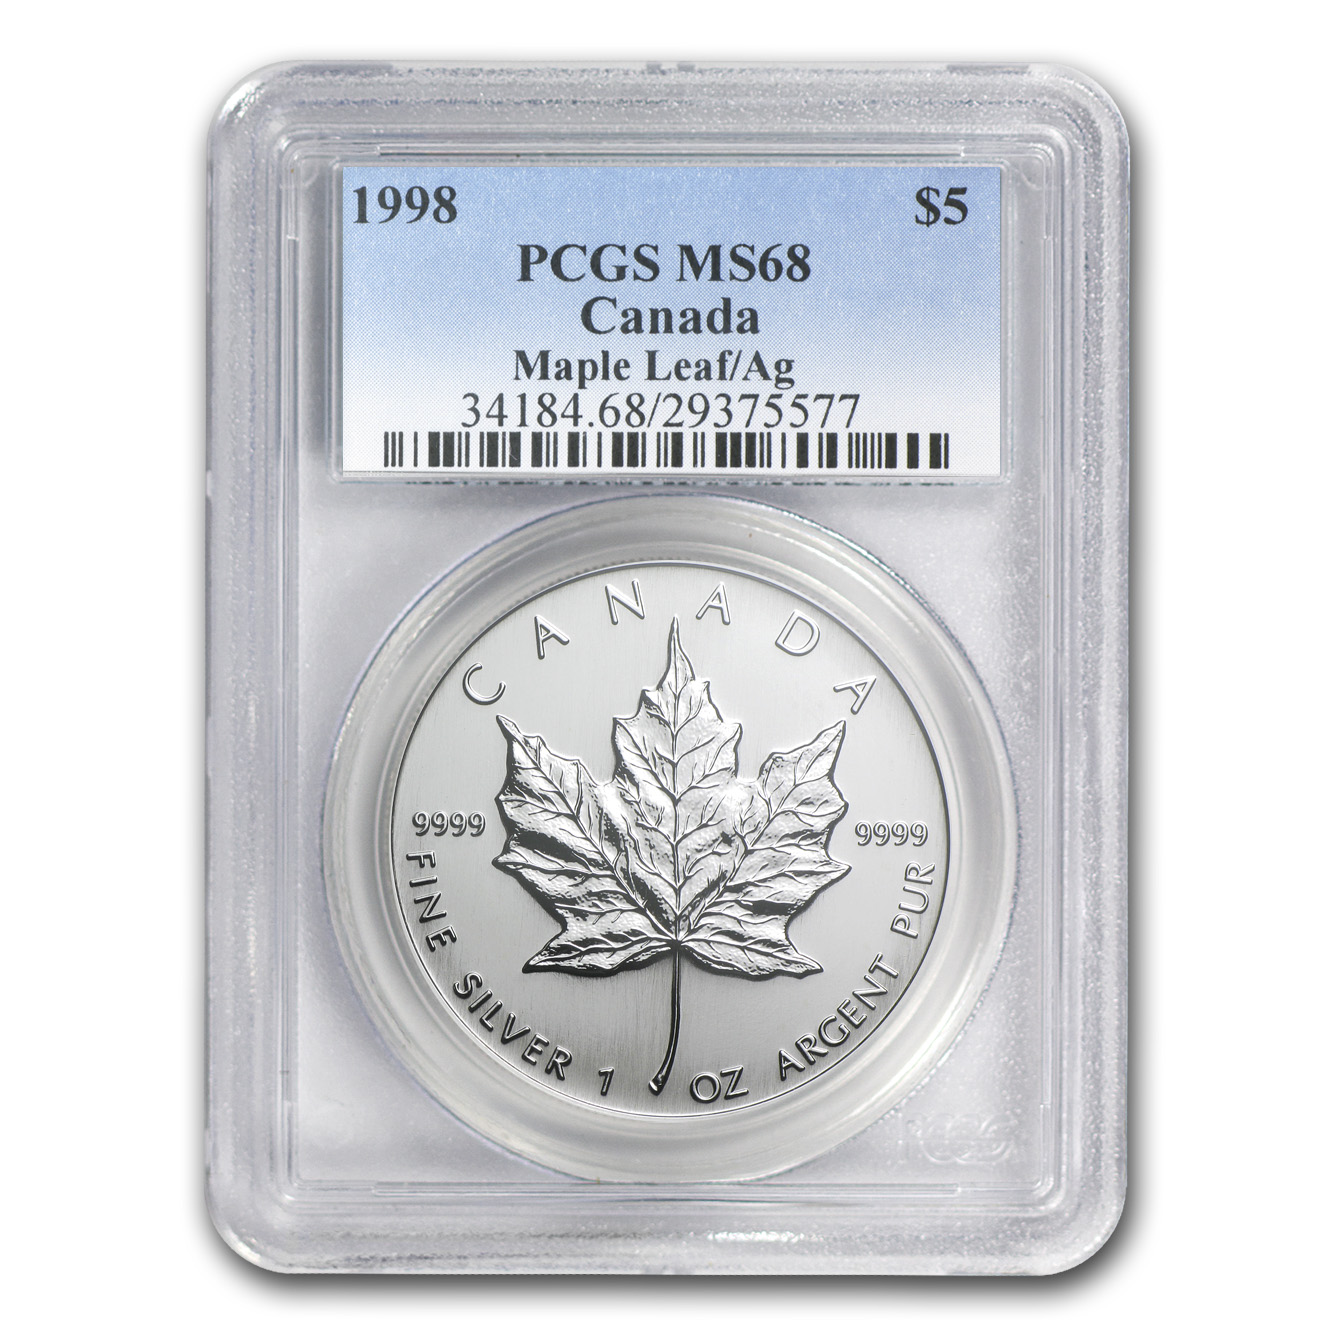 1998 Canada 1 oz Silver Maple Leaf MS-68 PCGS